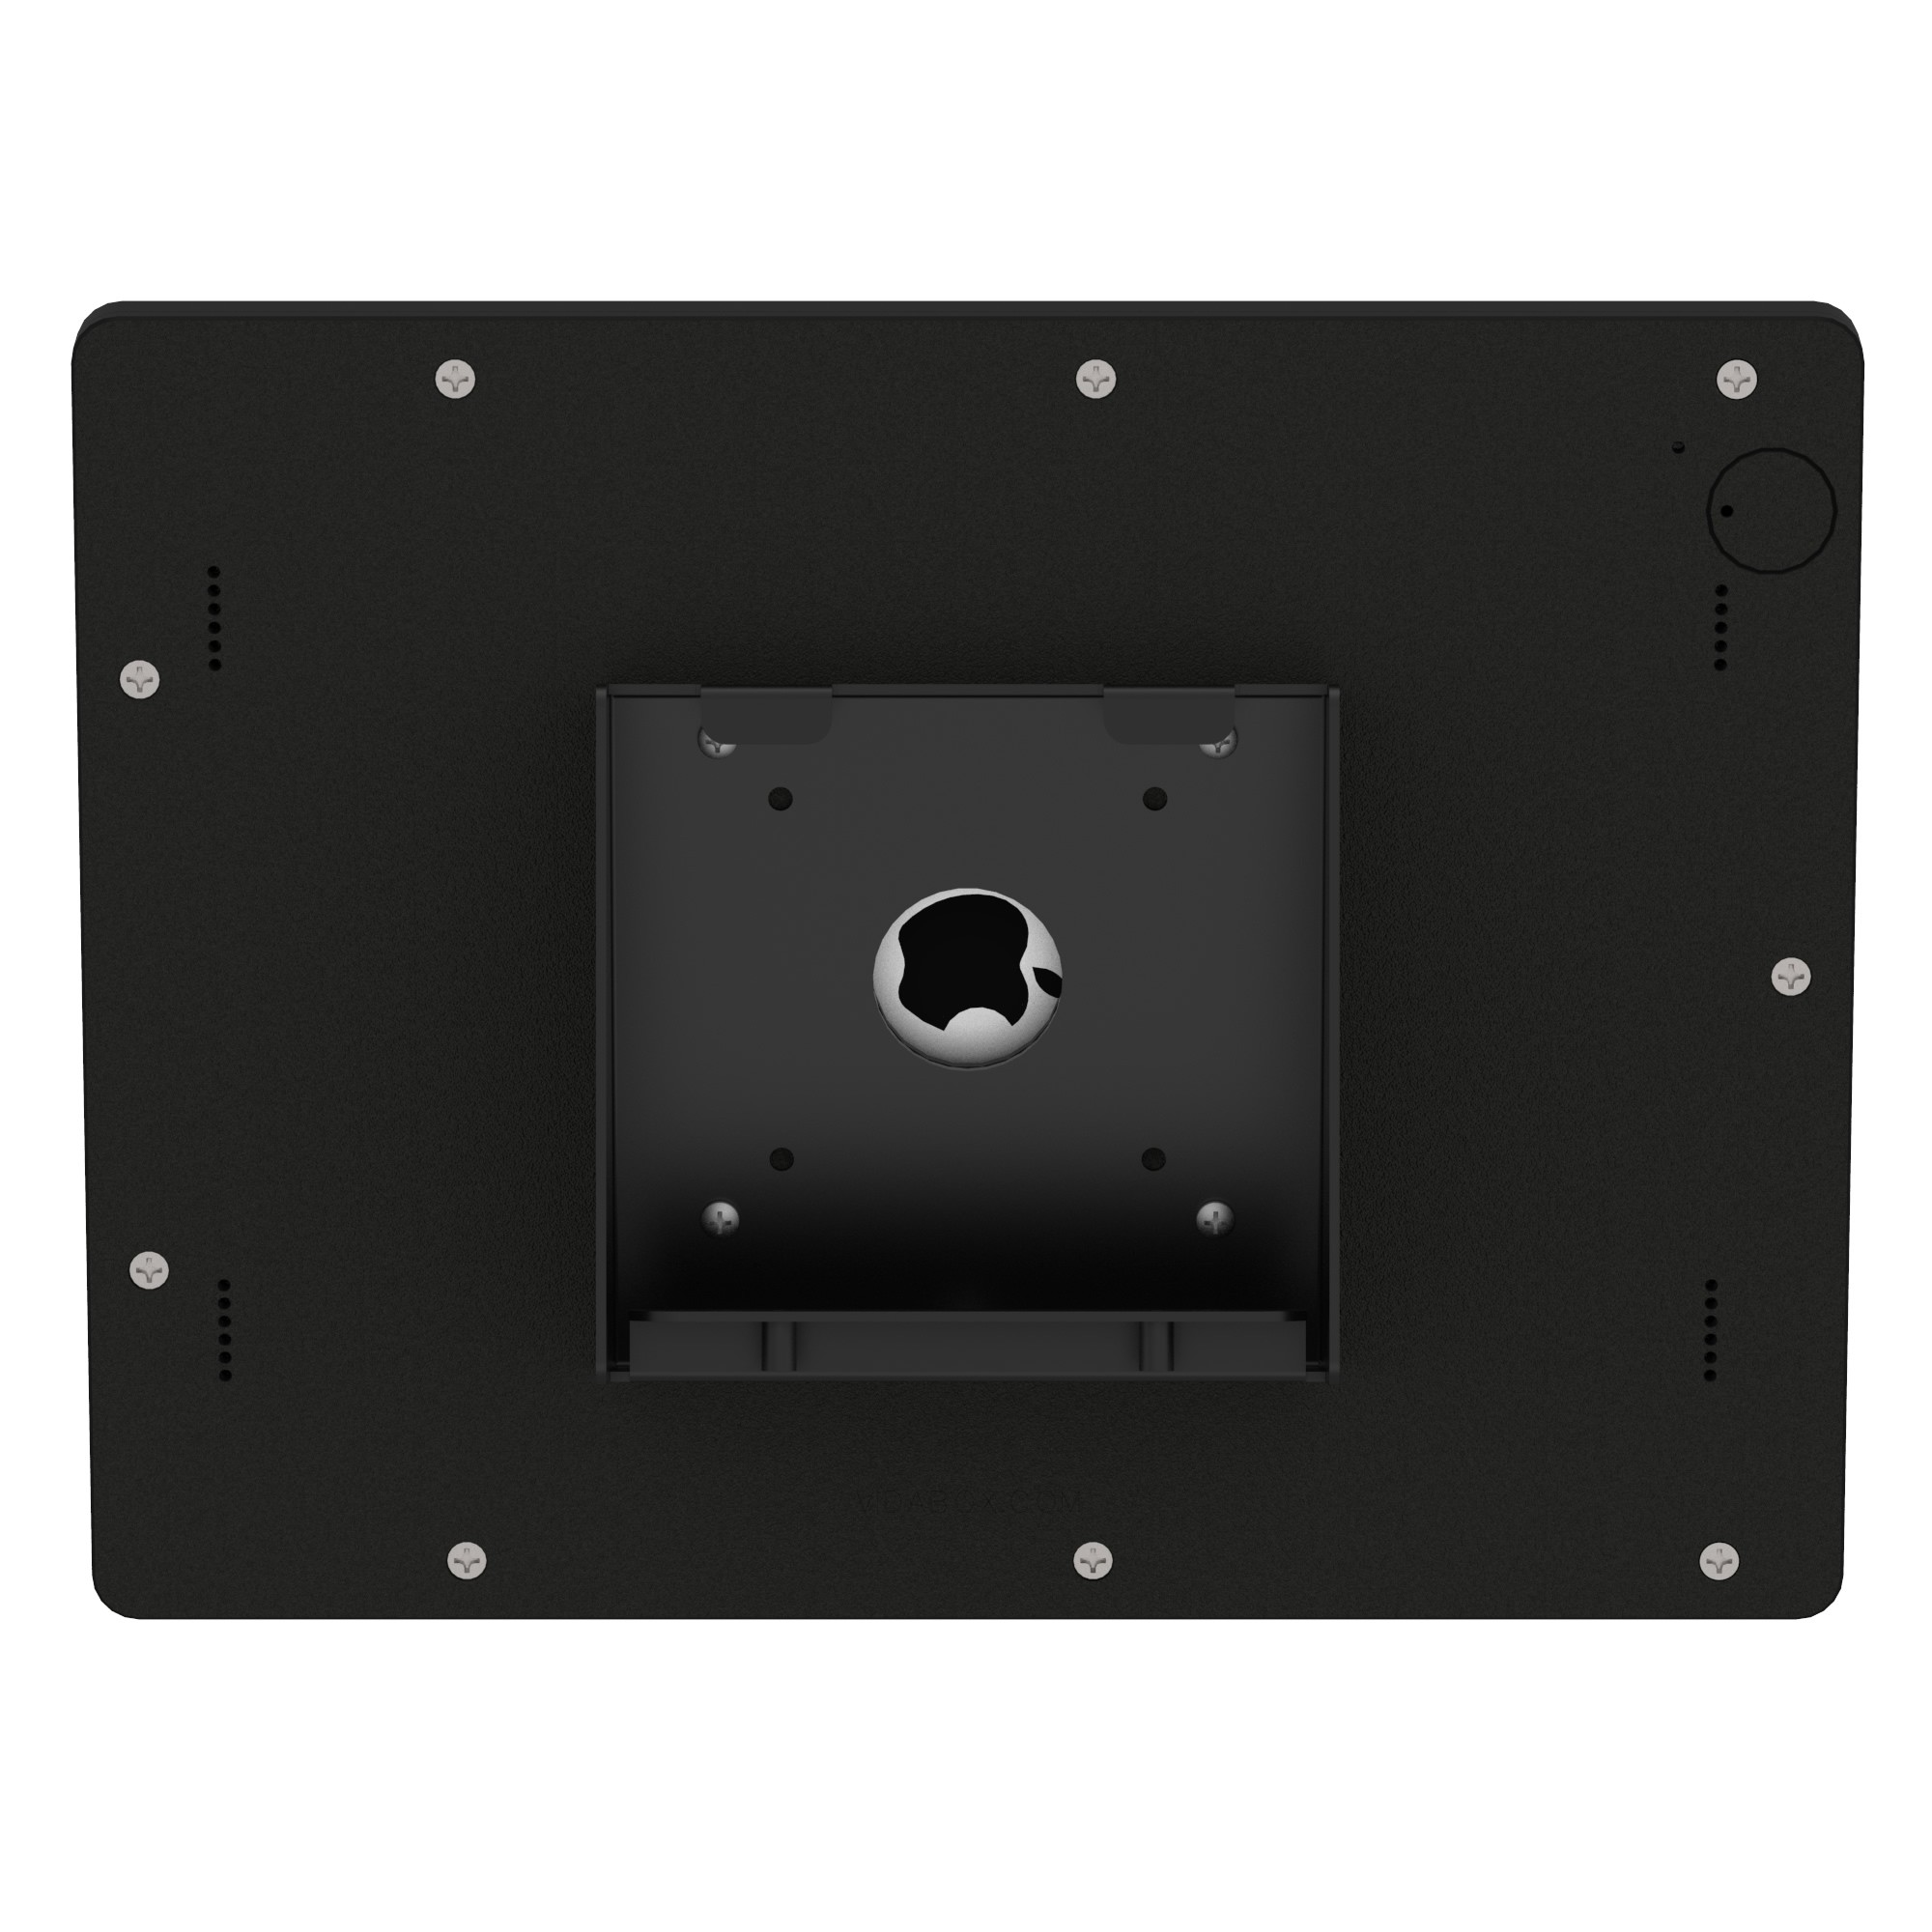 12 9 Inch Ipad Pro Black Enclosure W Fixed Tilted 15